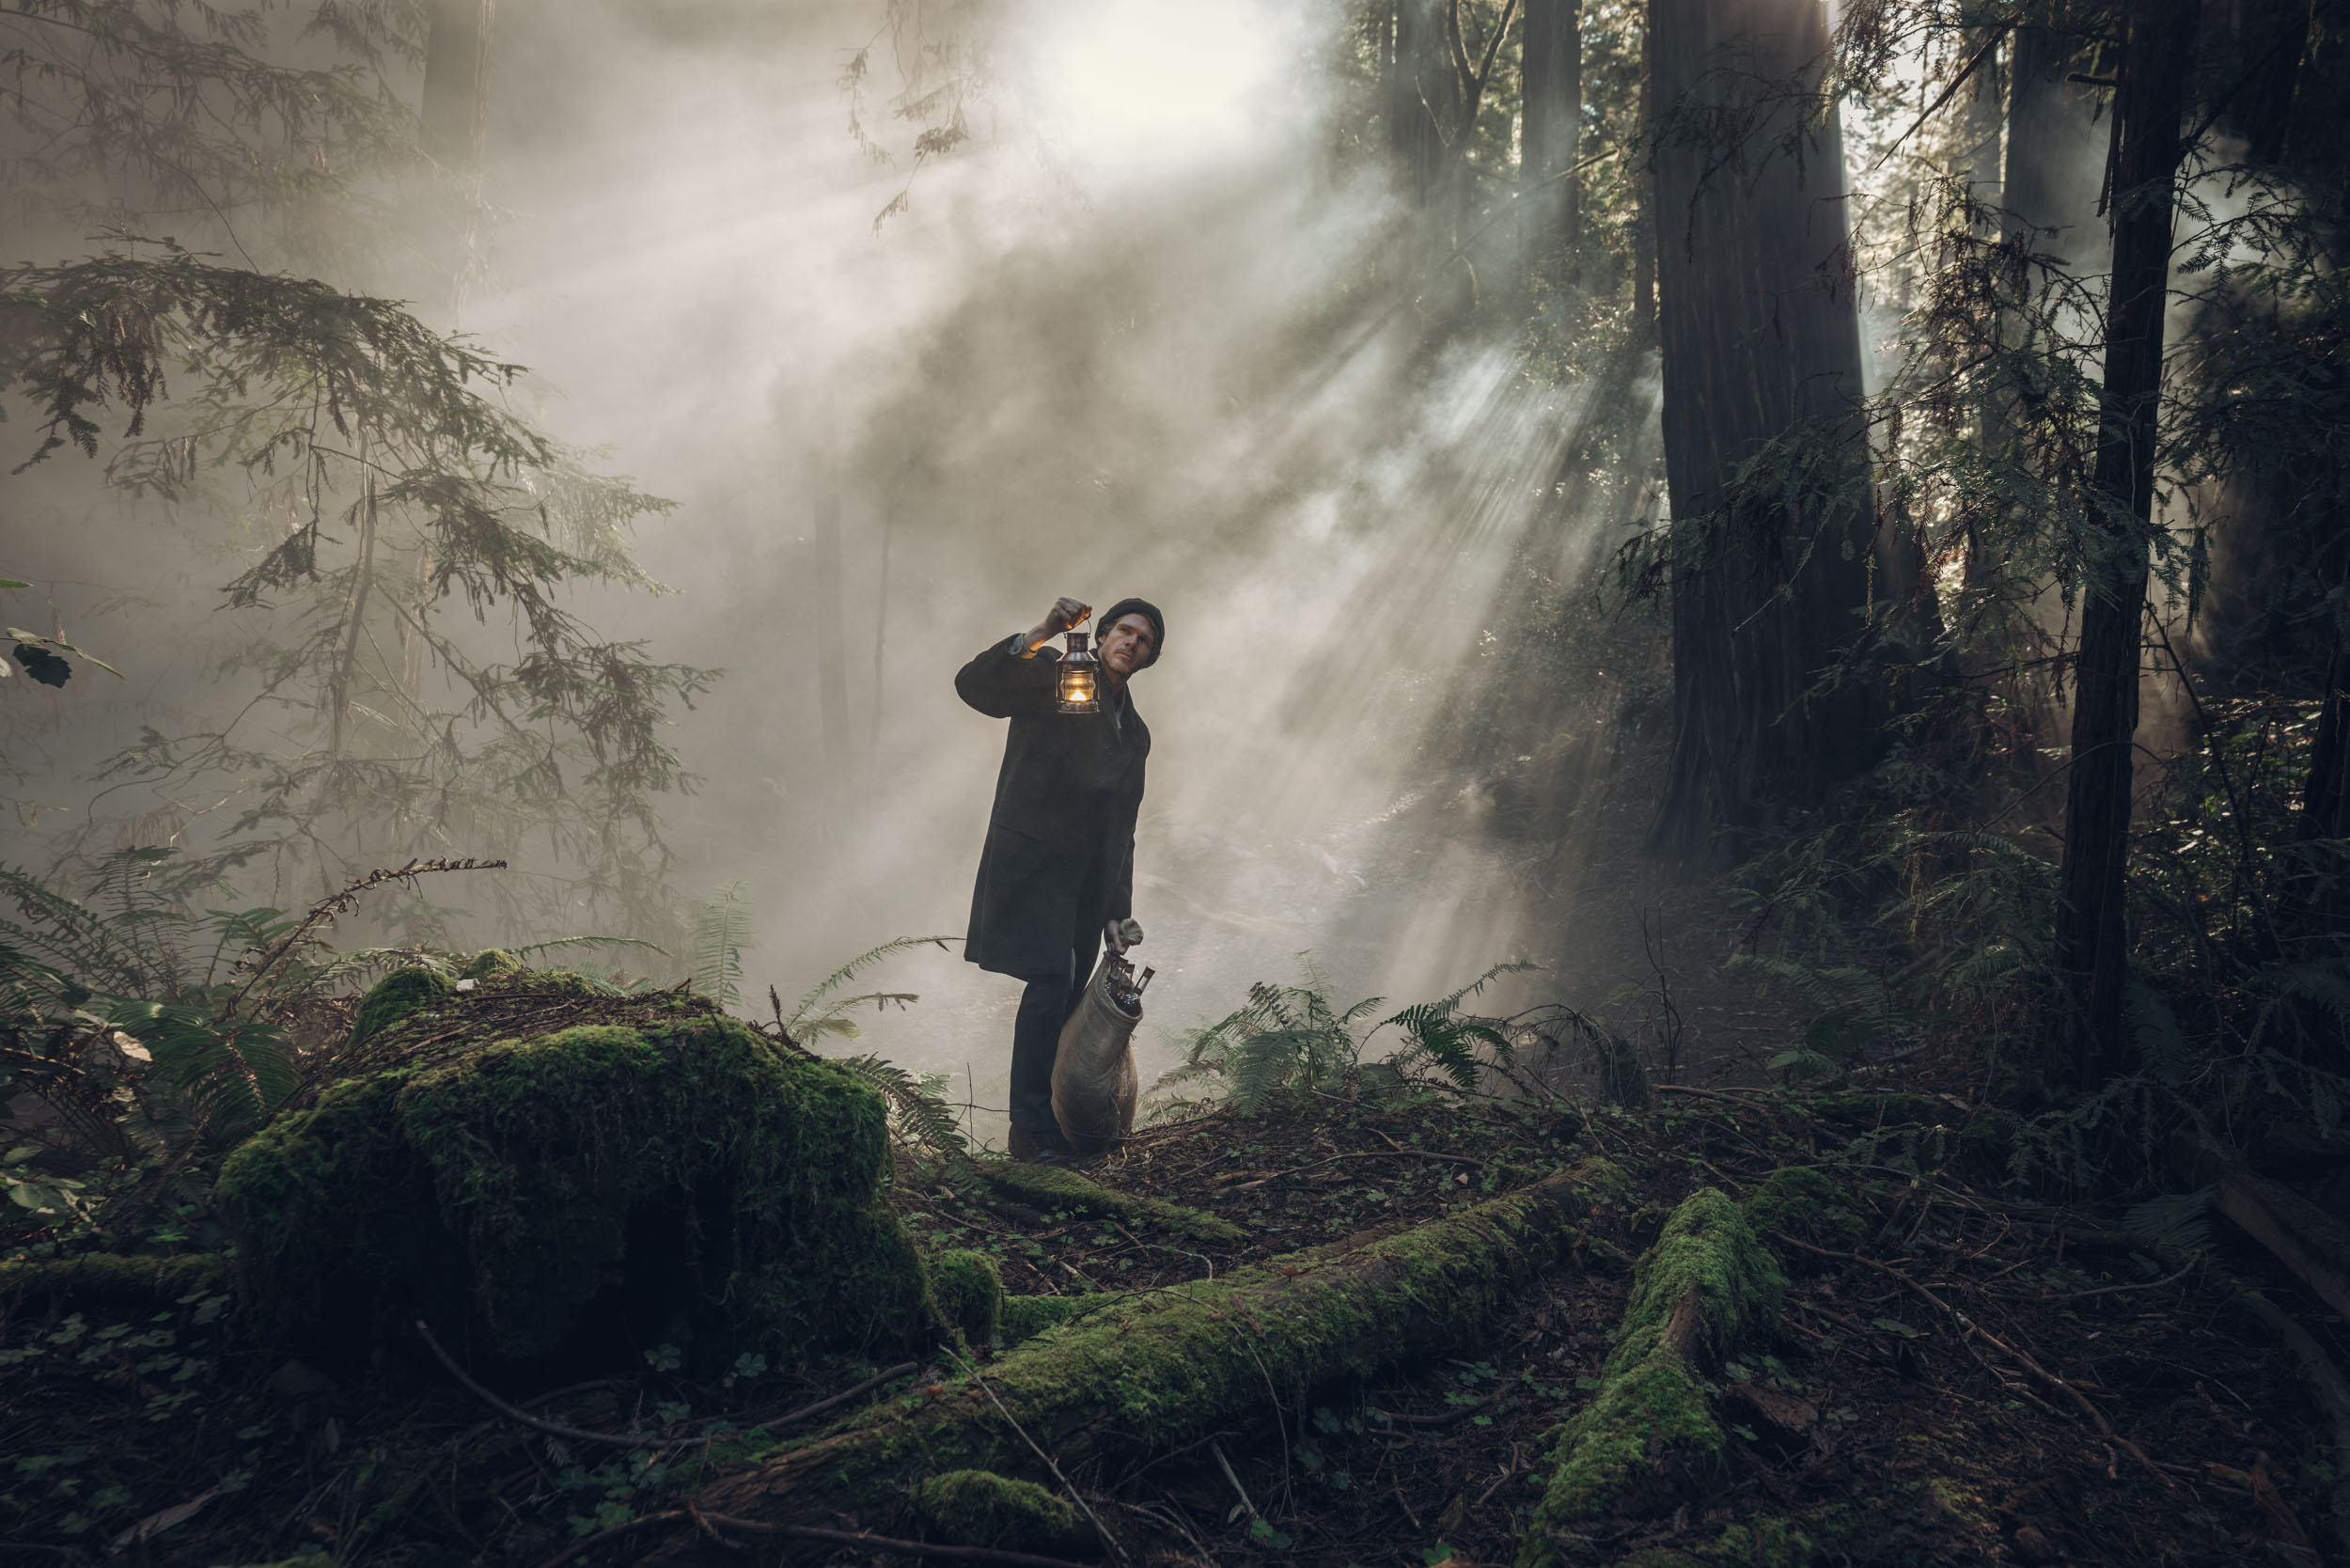 Man in dark clothes holds a lantern and peers through the fog in a creepy forest